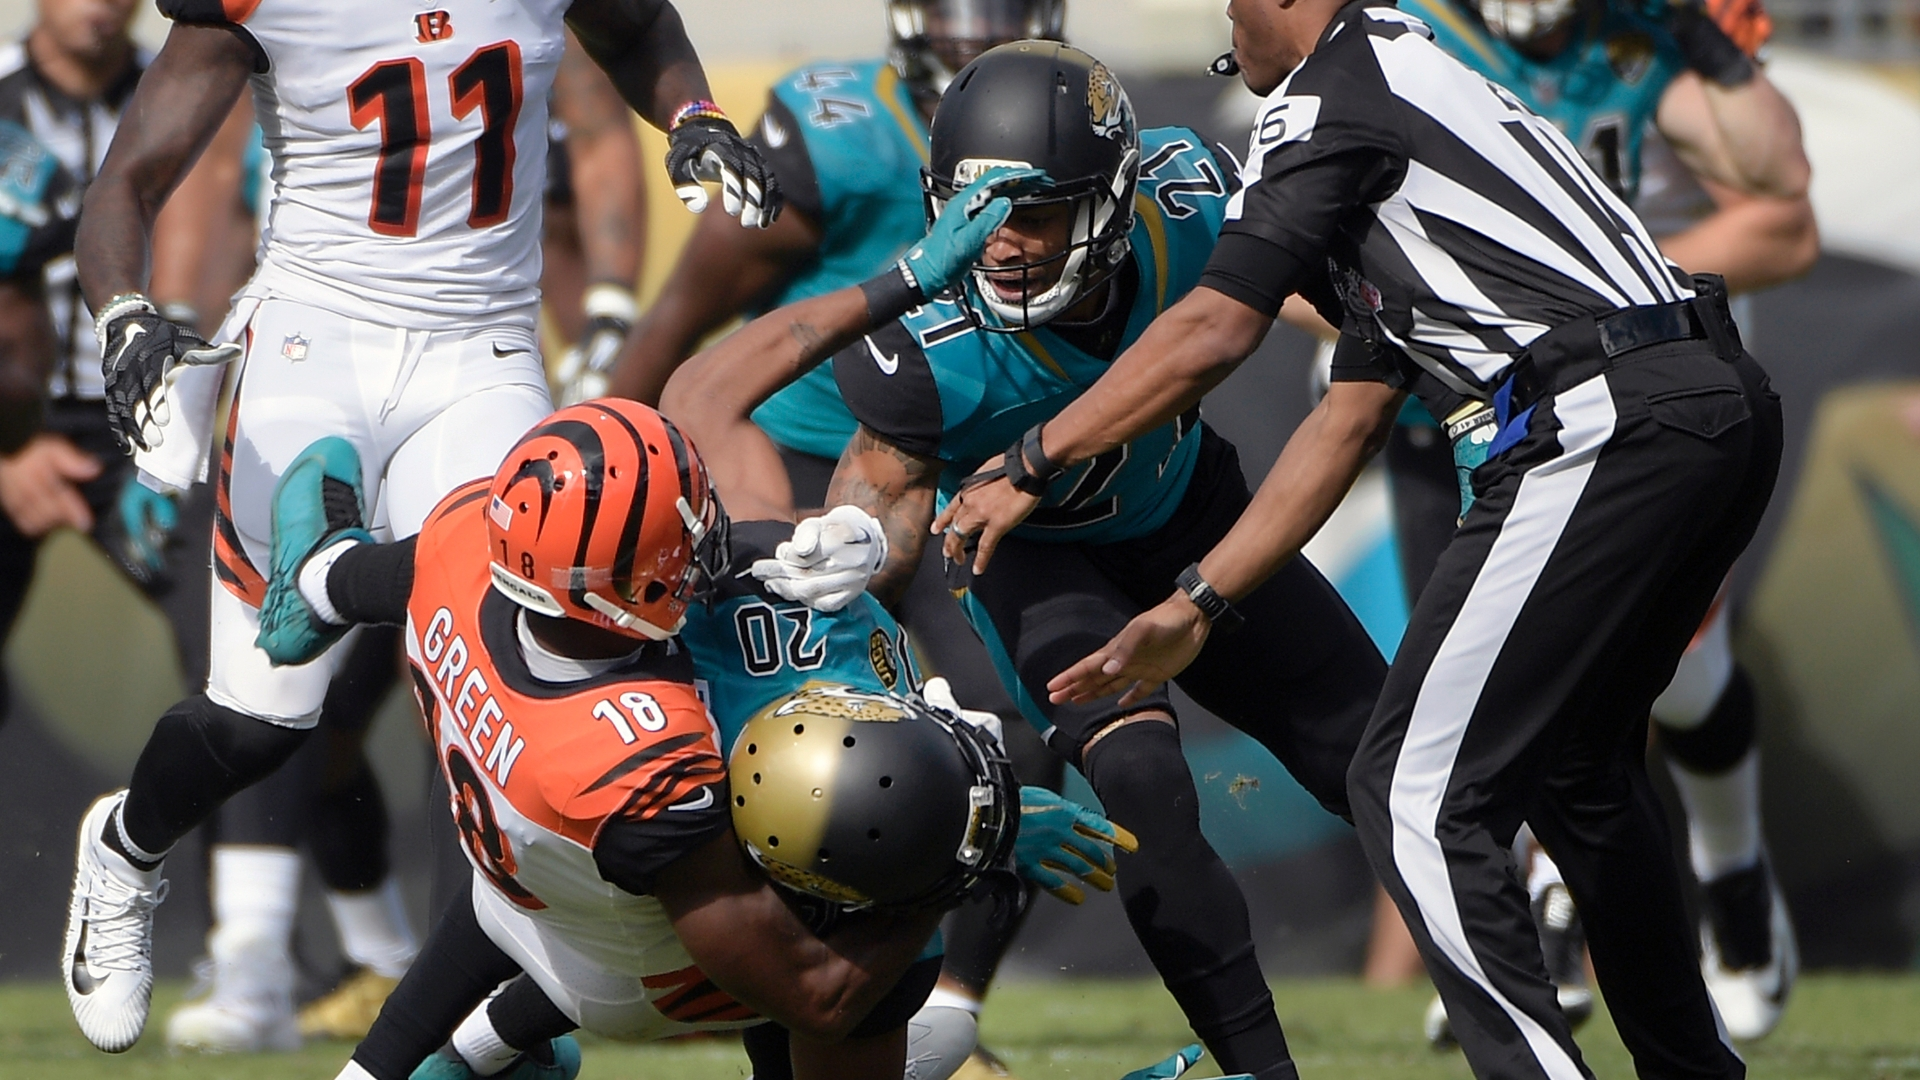 JACKSONVILLE (FNN SPORTS) - Despite Bengals wide receiver AJ Green (left) and Jacksonville cornerback Jalen Ramsey's (center) scuffle, the Jaguars fought their way to their first EverBank Field win of the season. Photo: ESPN.